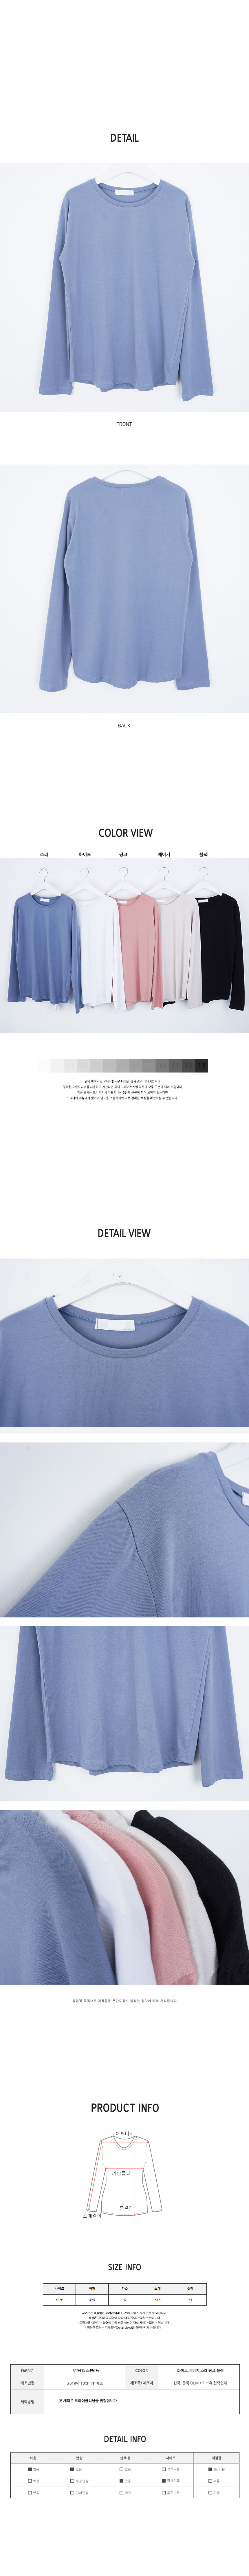 Lina Basic plain T-shirt